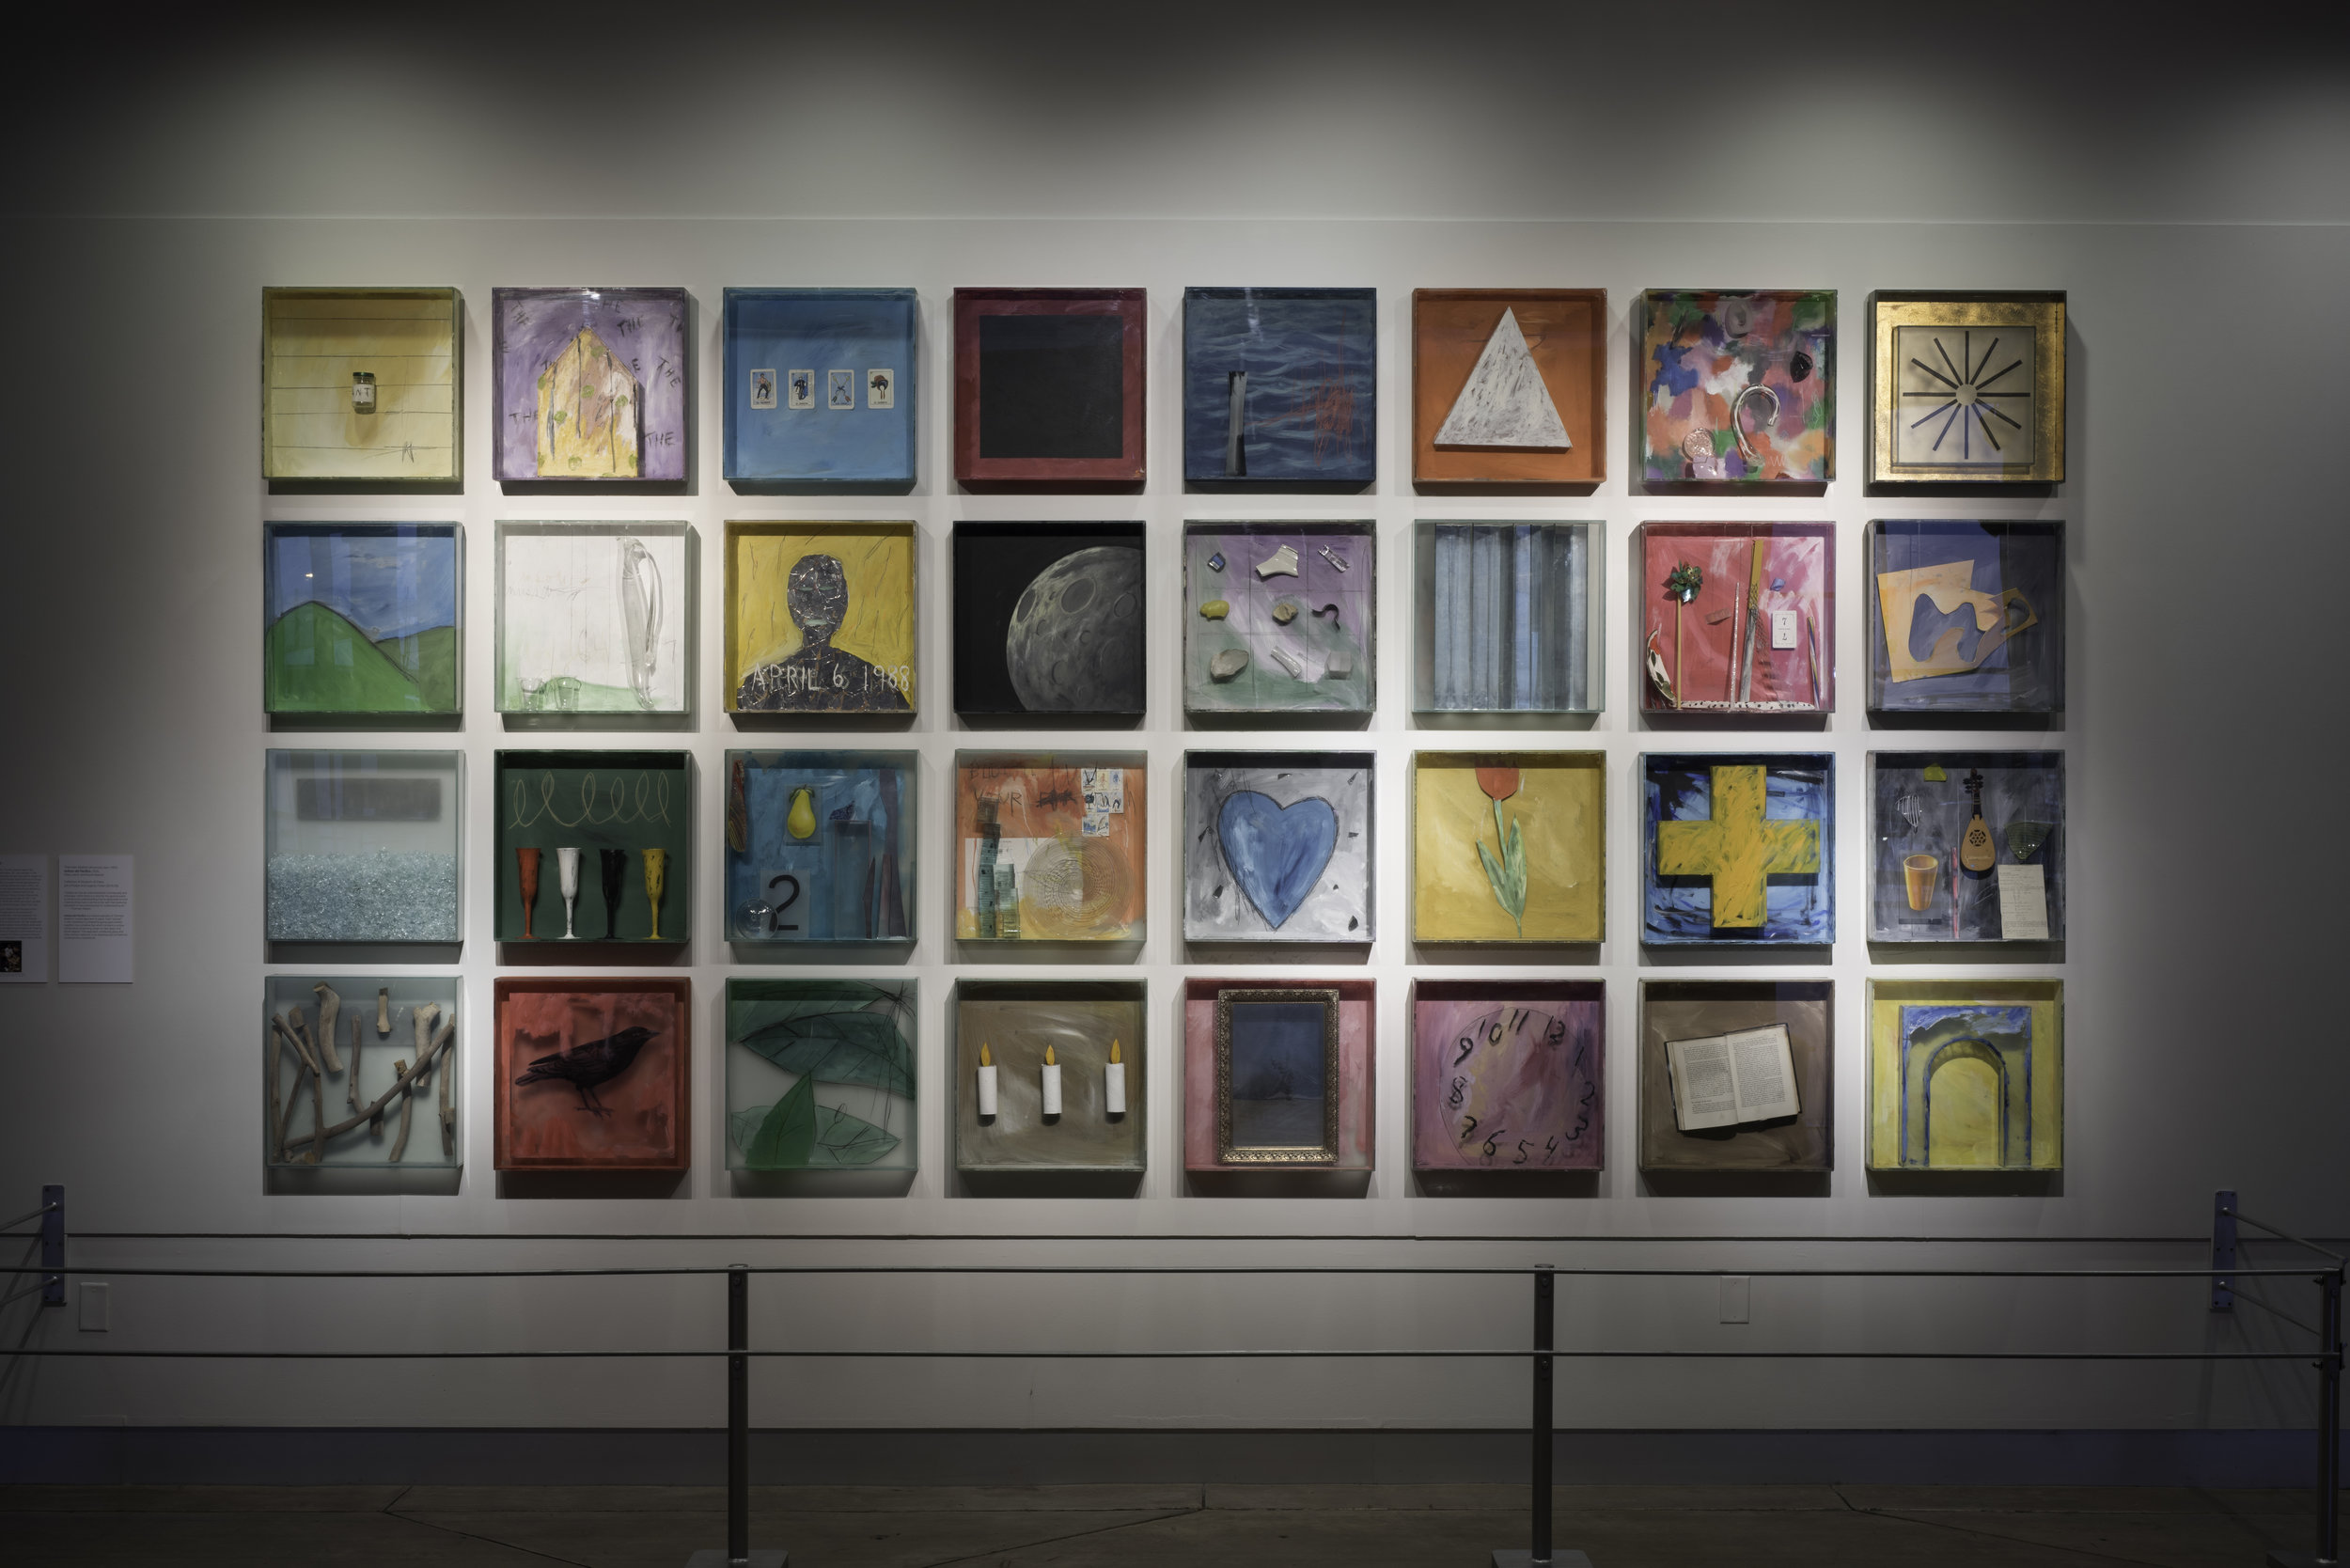 Therman Statom (American, born 1953). Indices del Pacifico,  2000.Glass, paint, and found objects;32 boxes, each: 18 x 18 x 3 1/2 in.Collection of Museum of Glass, Tacoma, Washington, gift of Ralph and Eugenia Potkin.Photo by Duncan Price.